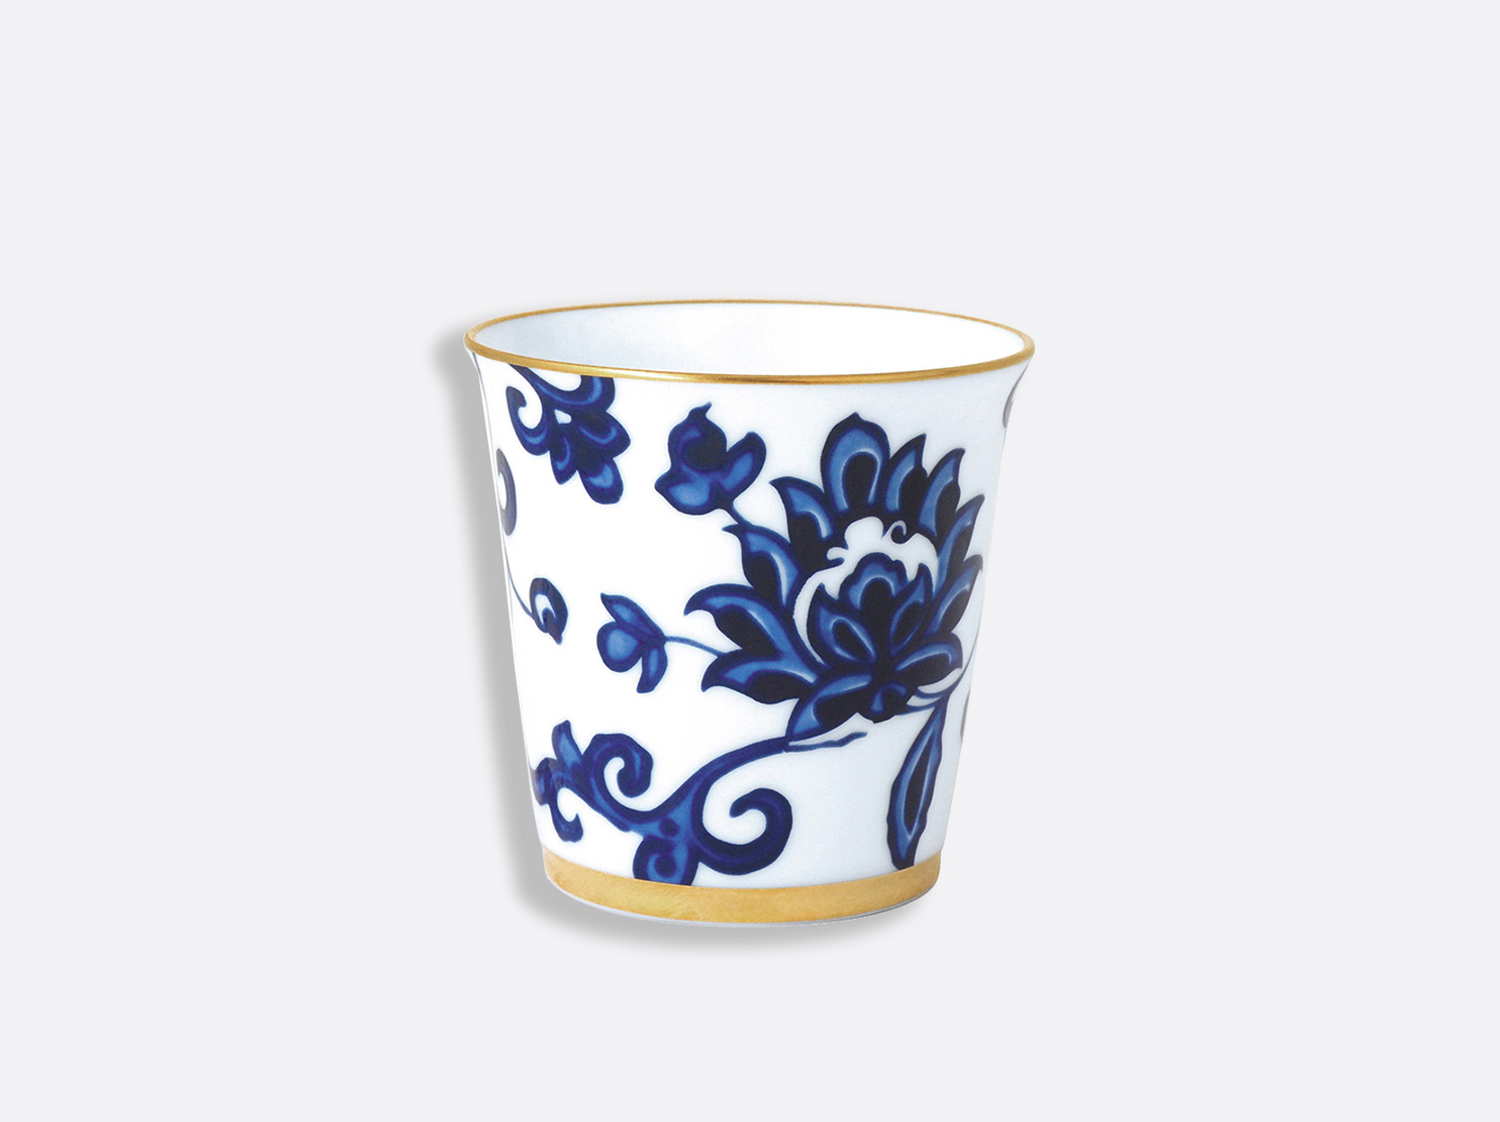 Pot 9 cm + bougie parfumée 200g en porcelaine de la collection Prince bleu - pot Bernardaud